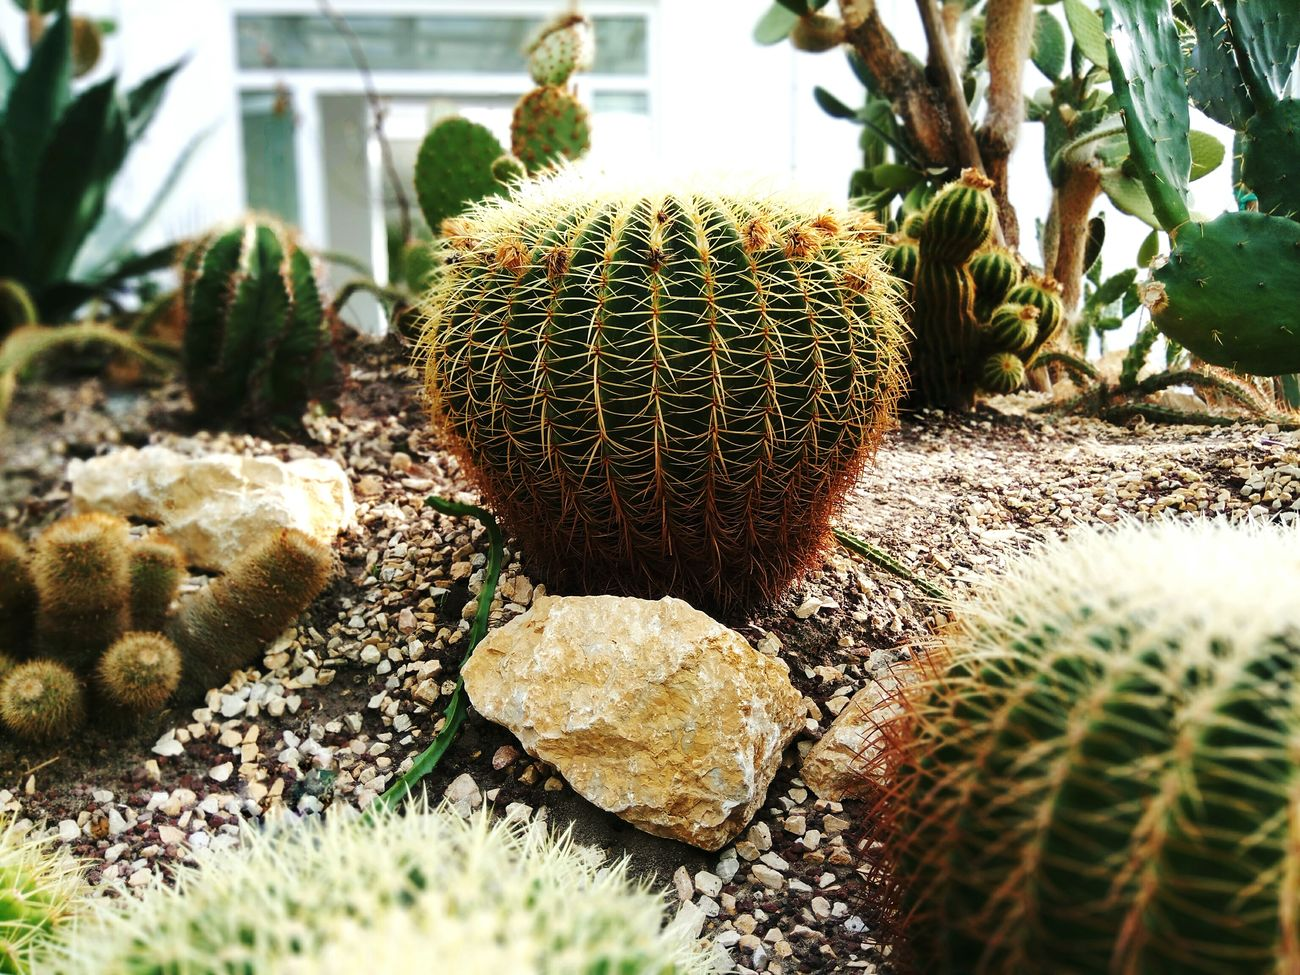 🌵 Green Leaf Leaf Beauty In Nature Green Color Needle - Plant Part Nature Plant Tree Growth Plant Barrel Cactus Cactus Nature Sunlight No People Close-up Day Greenhouse 🌵 Cactus 😚